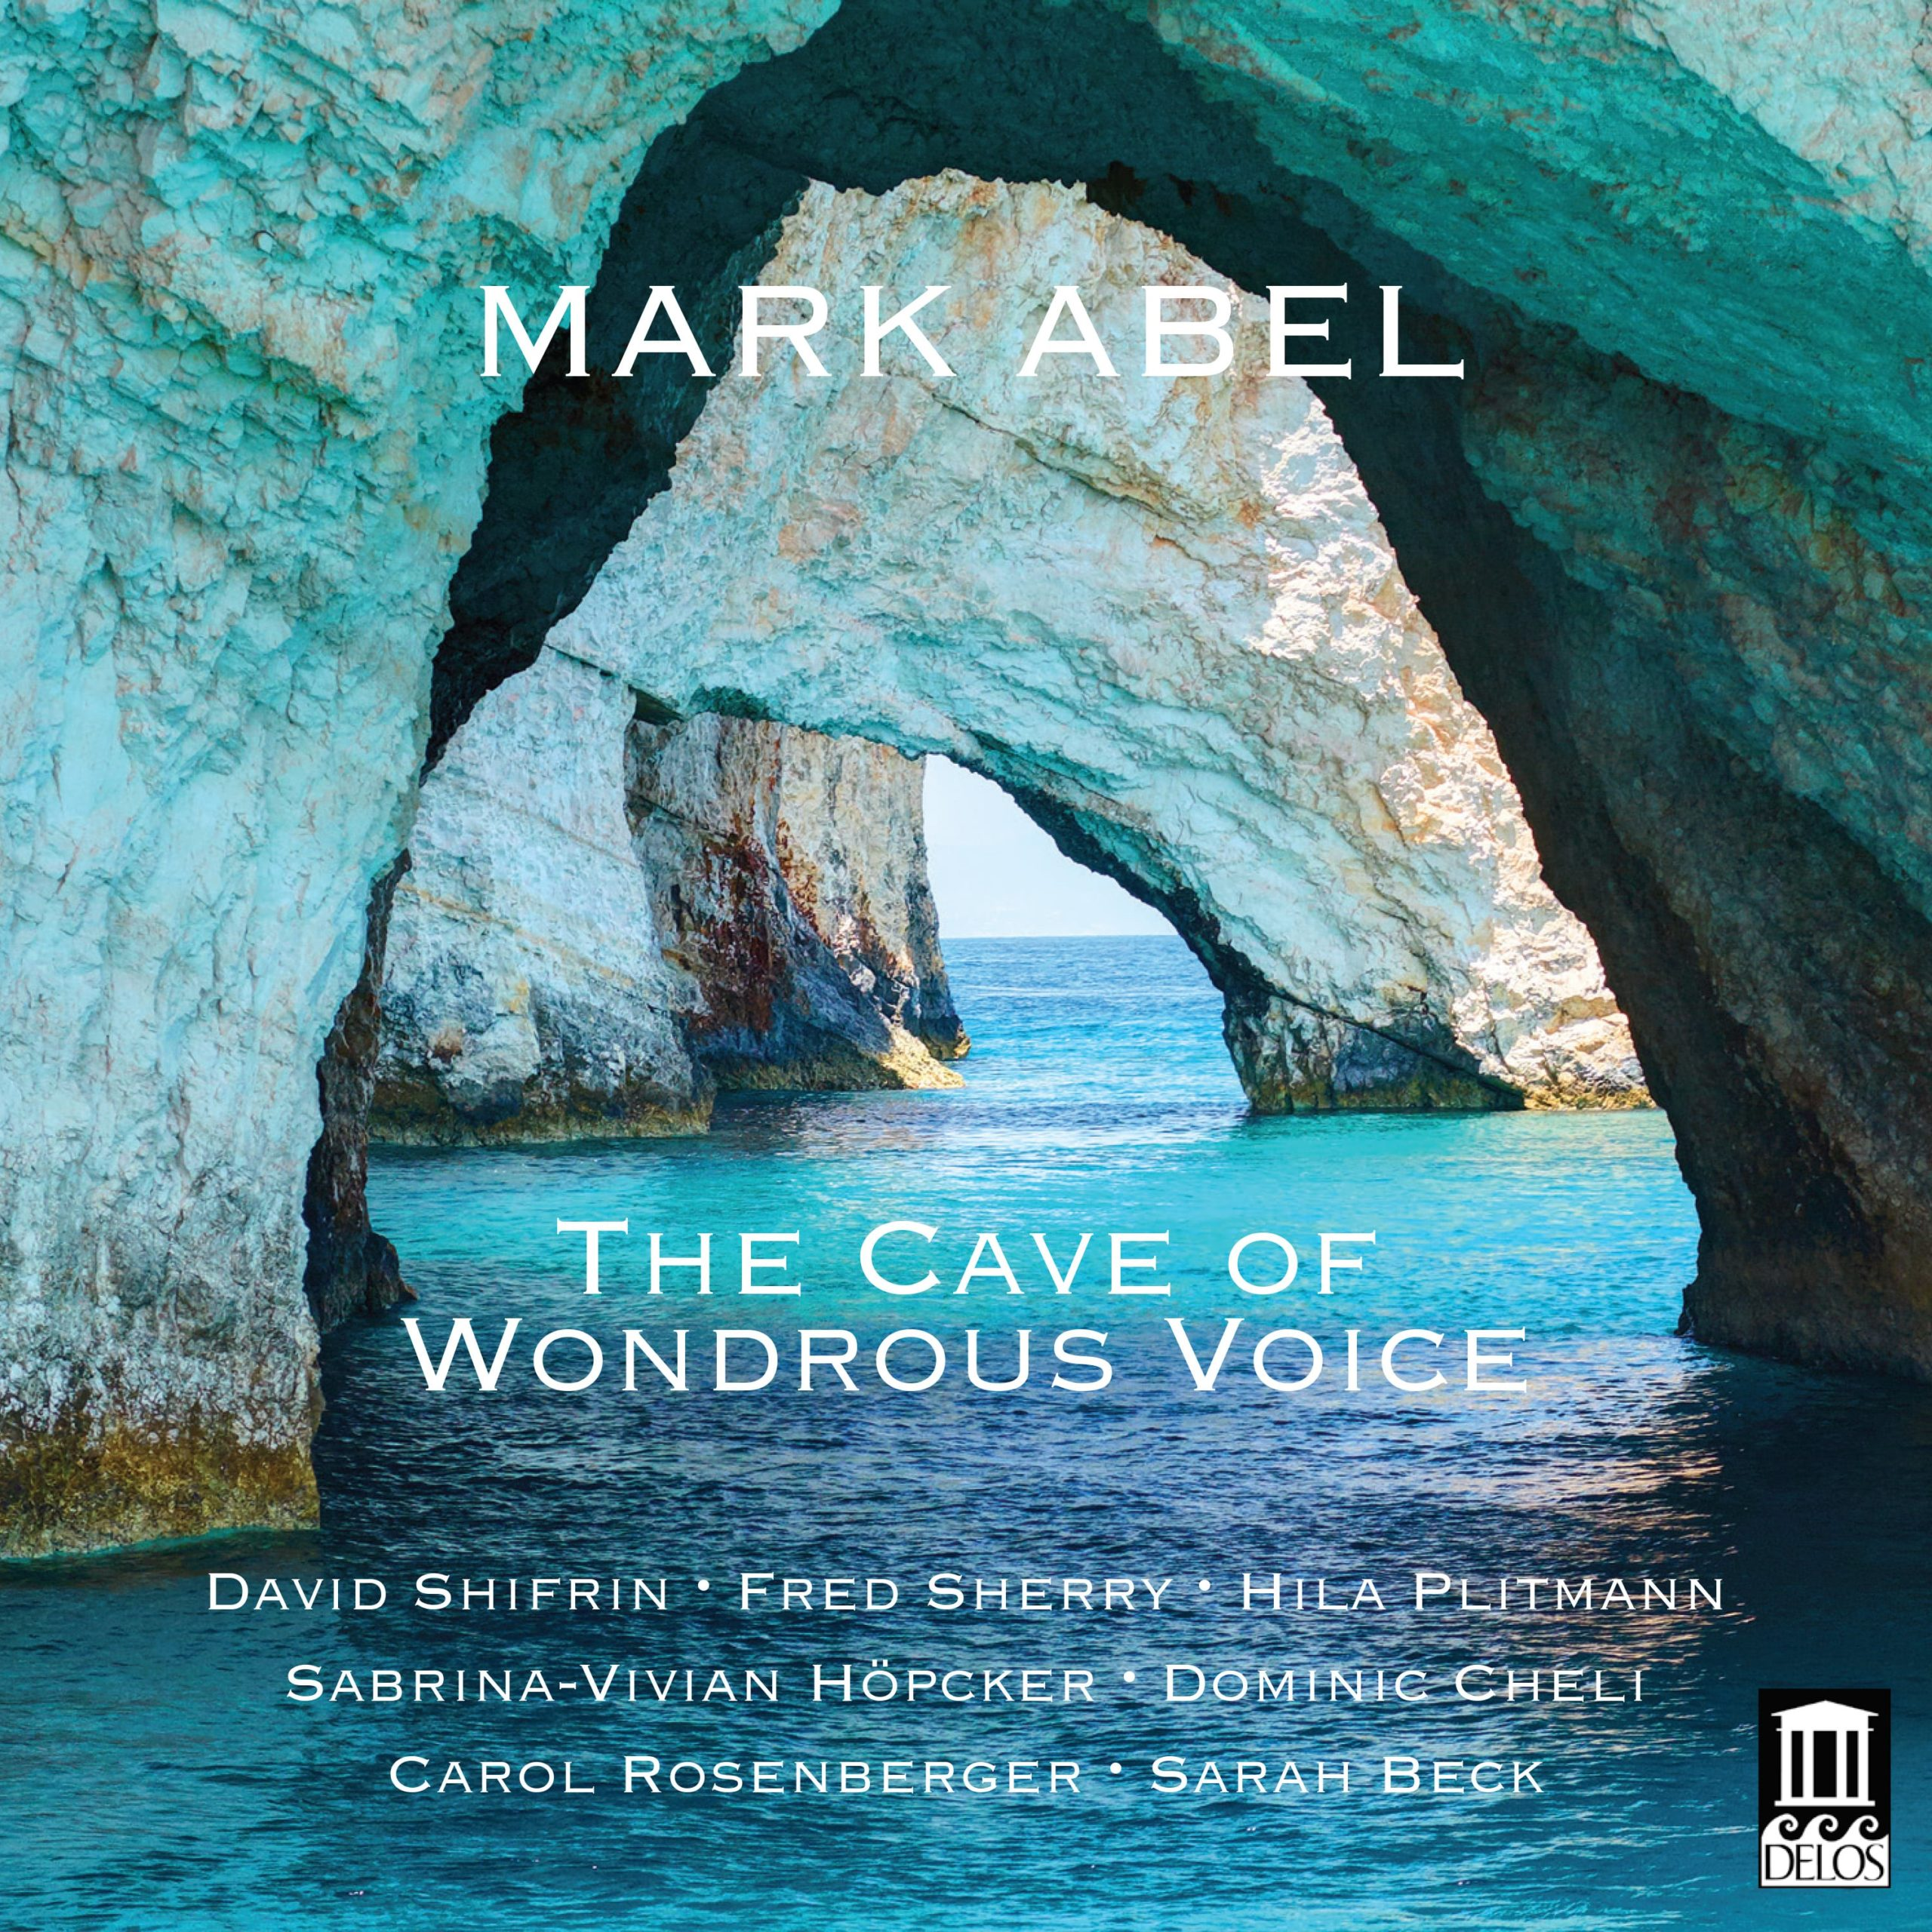 The Cave of Wondrous Voice: Chamber Music and Songs of Mark Abel